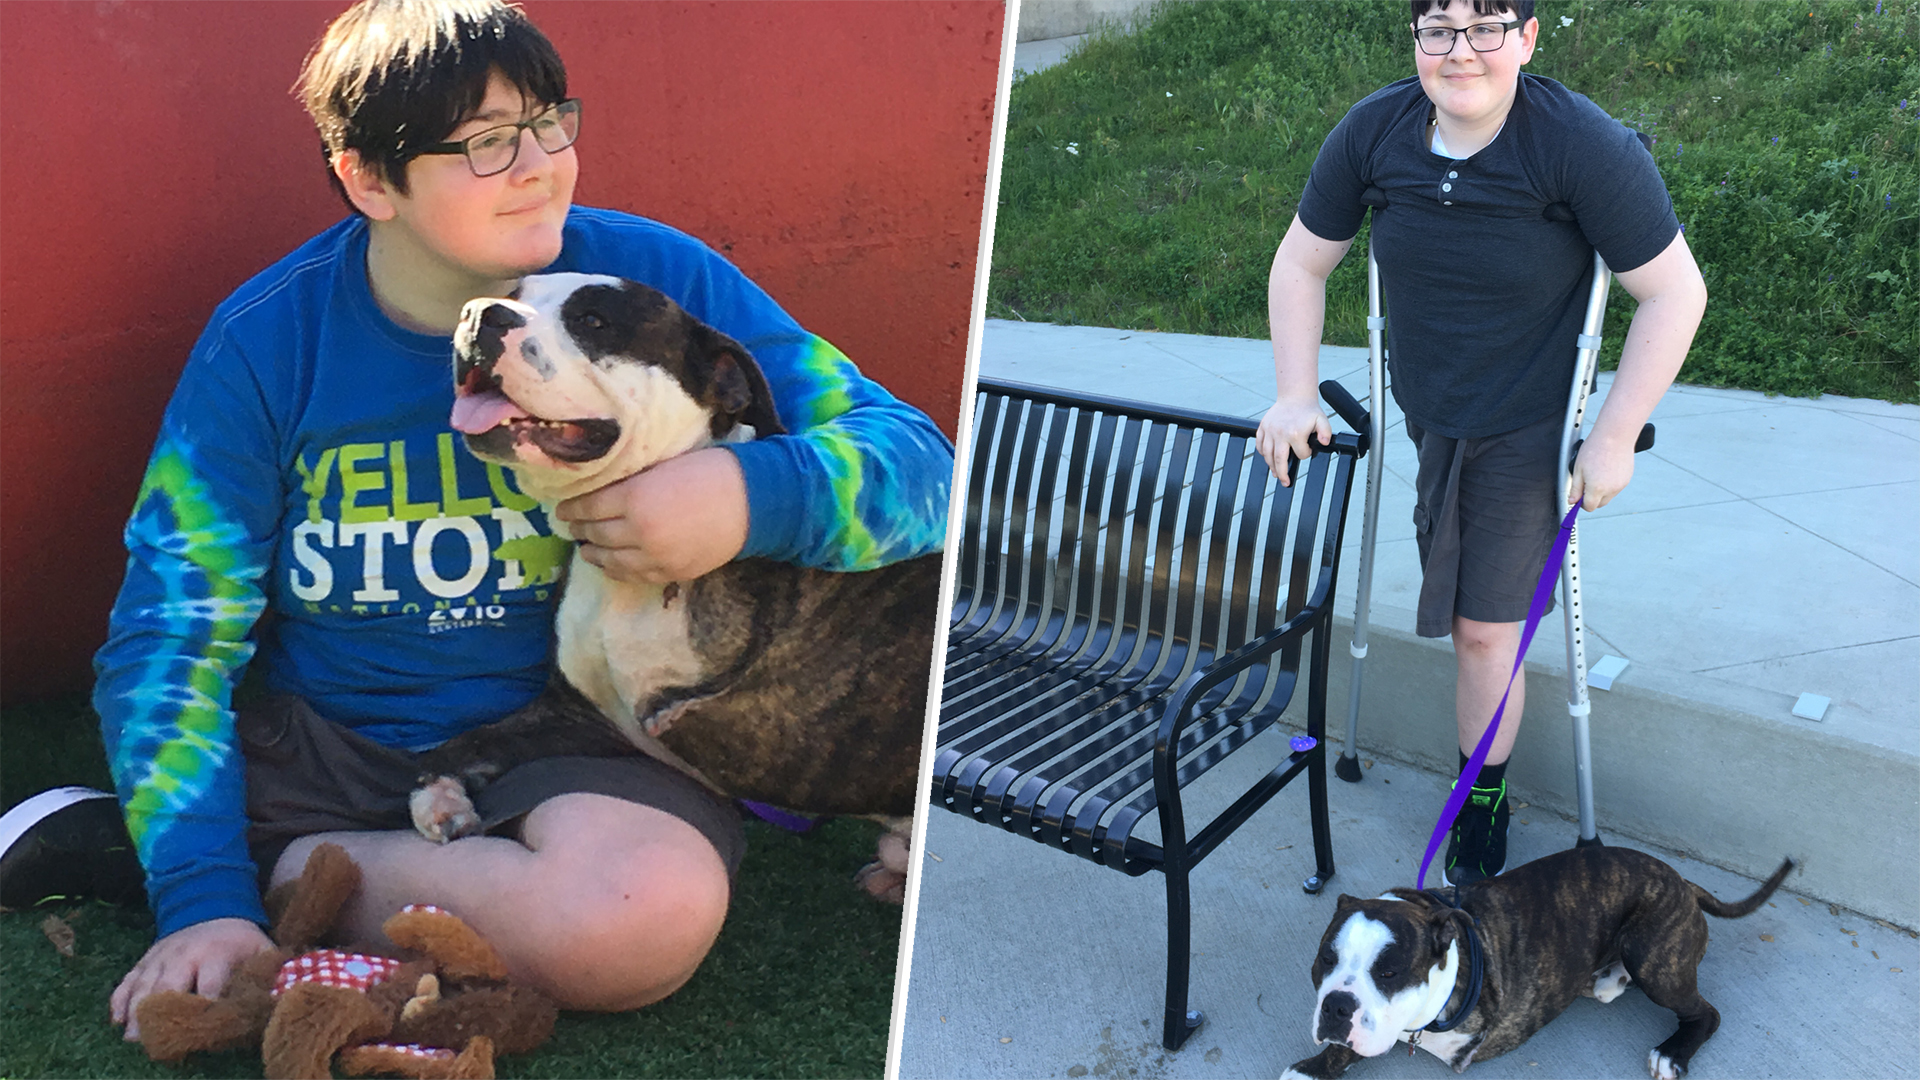 Boy Who Lost Leg To Cancer Happily Adopts A Dog With 3